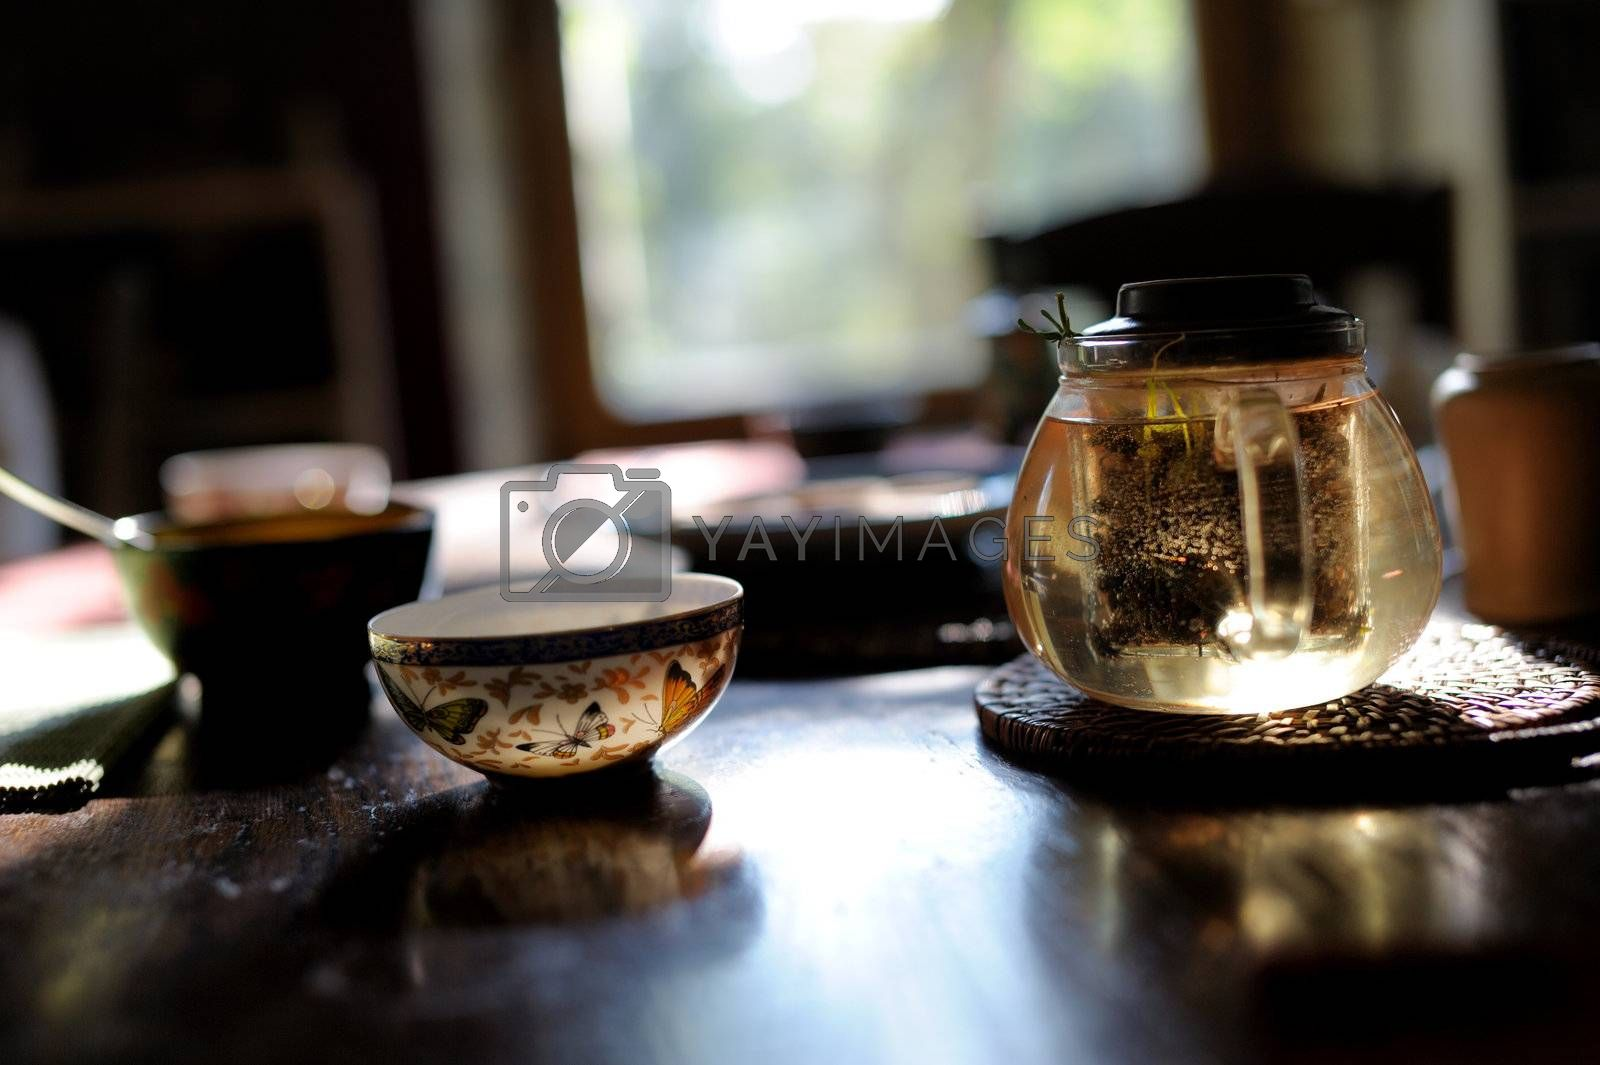 China tea cups and glass teapot on the table in the sunlight against the window